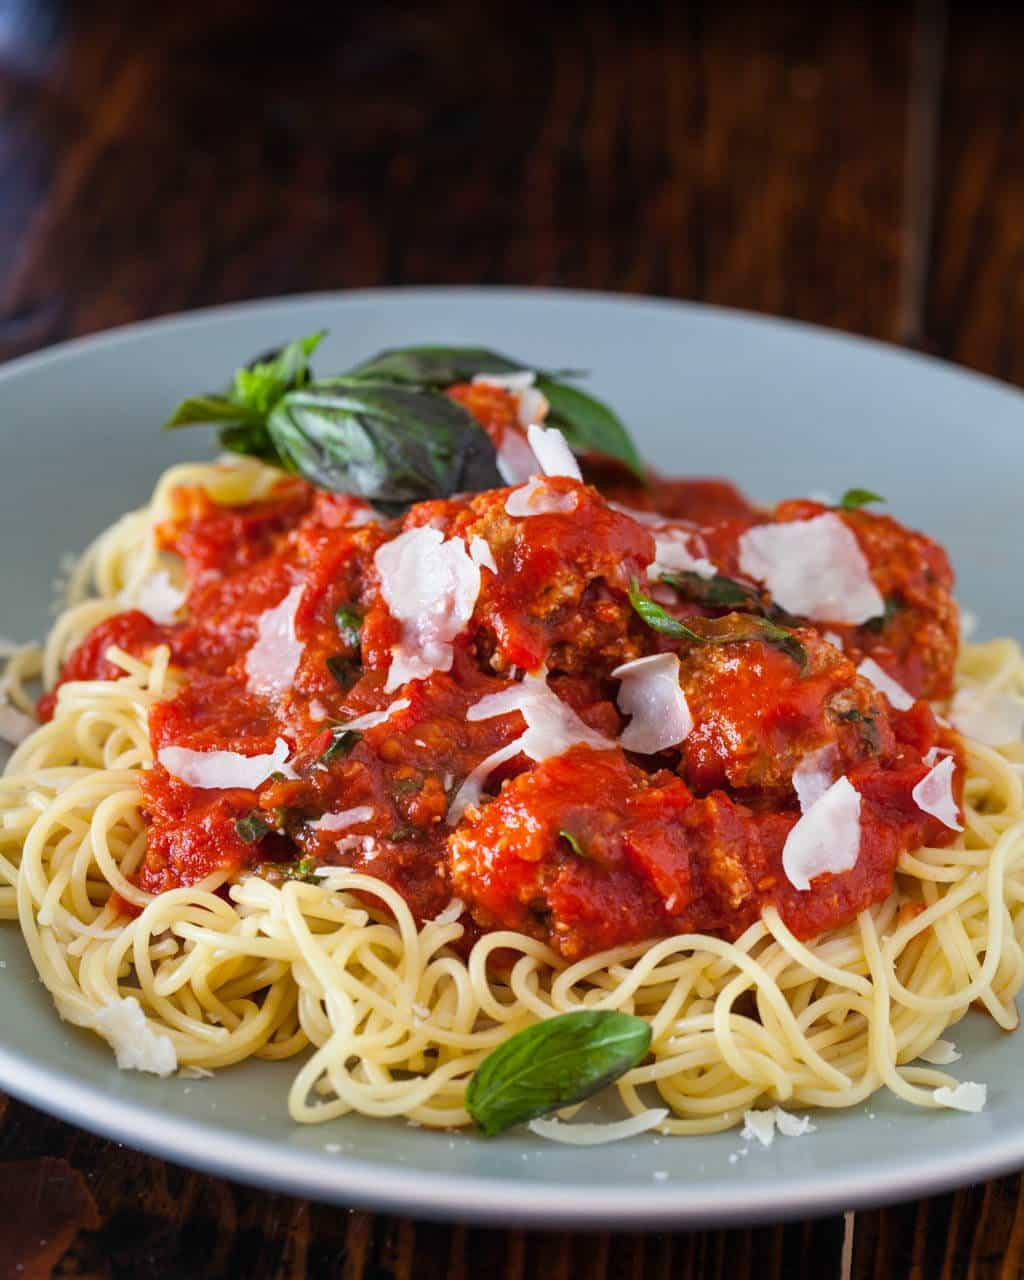 Is Spaghetti Healthy For You  Healthy Spaghetti and Meatballs 2 Secret Ingre nts